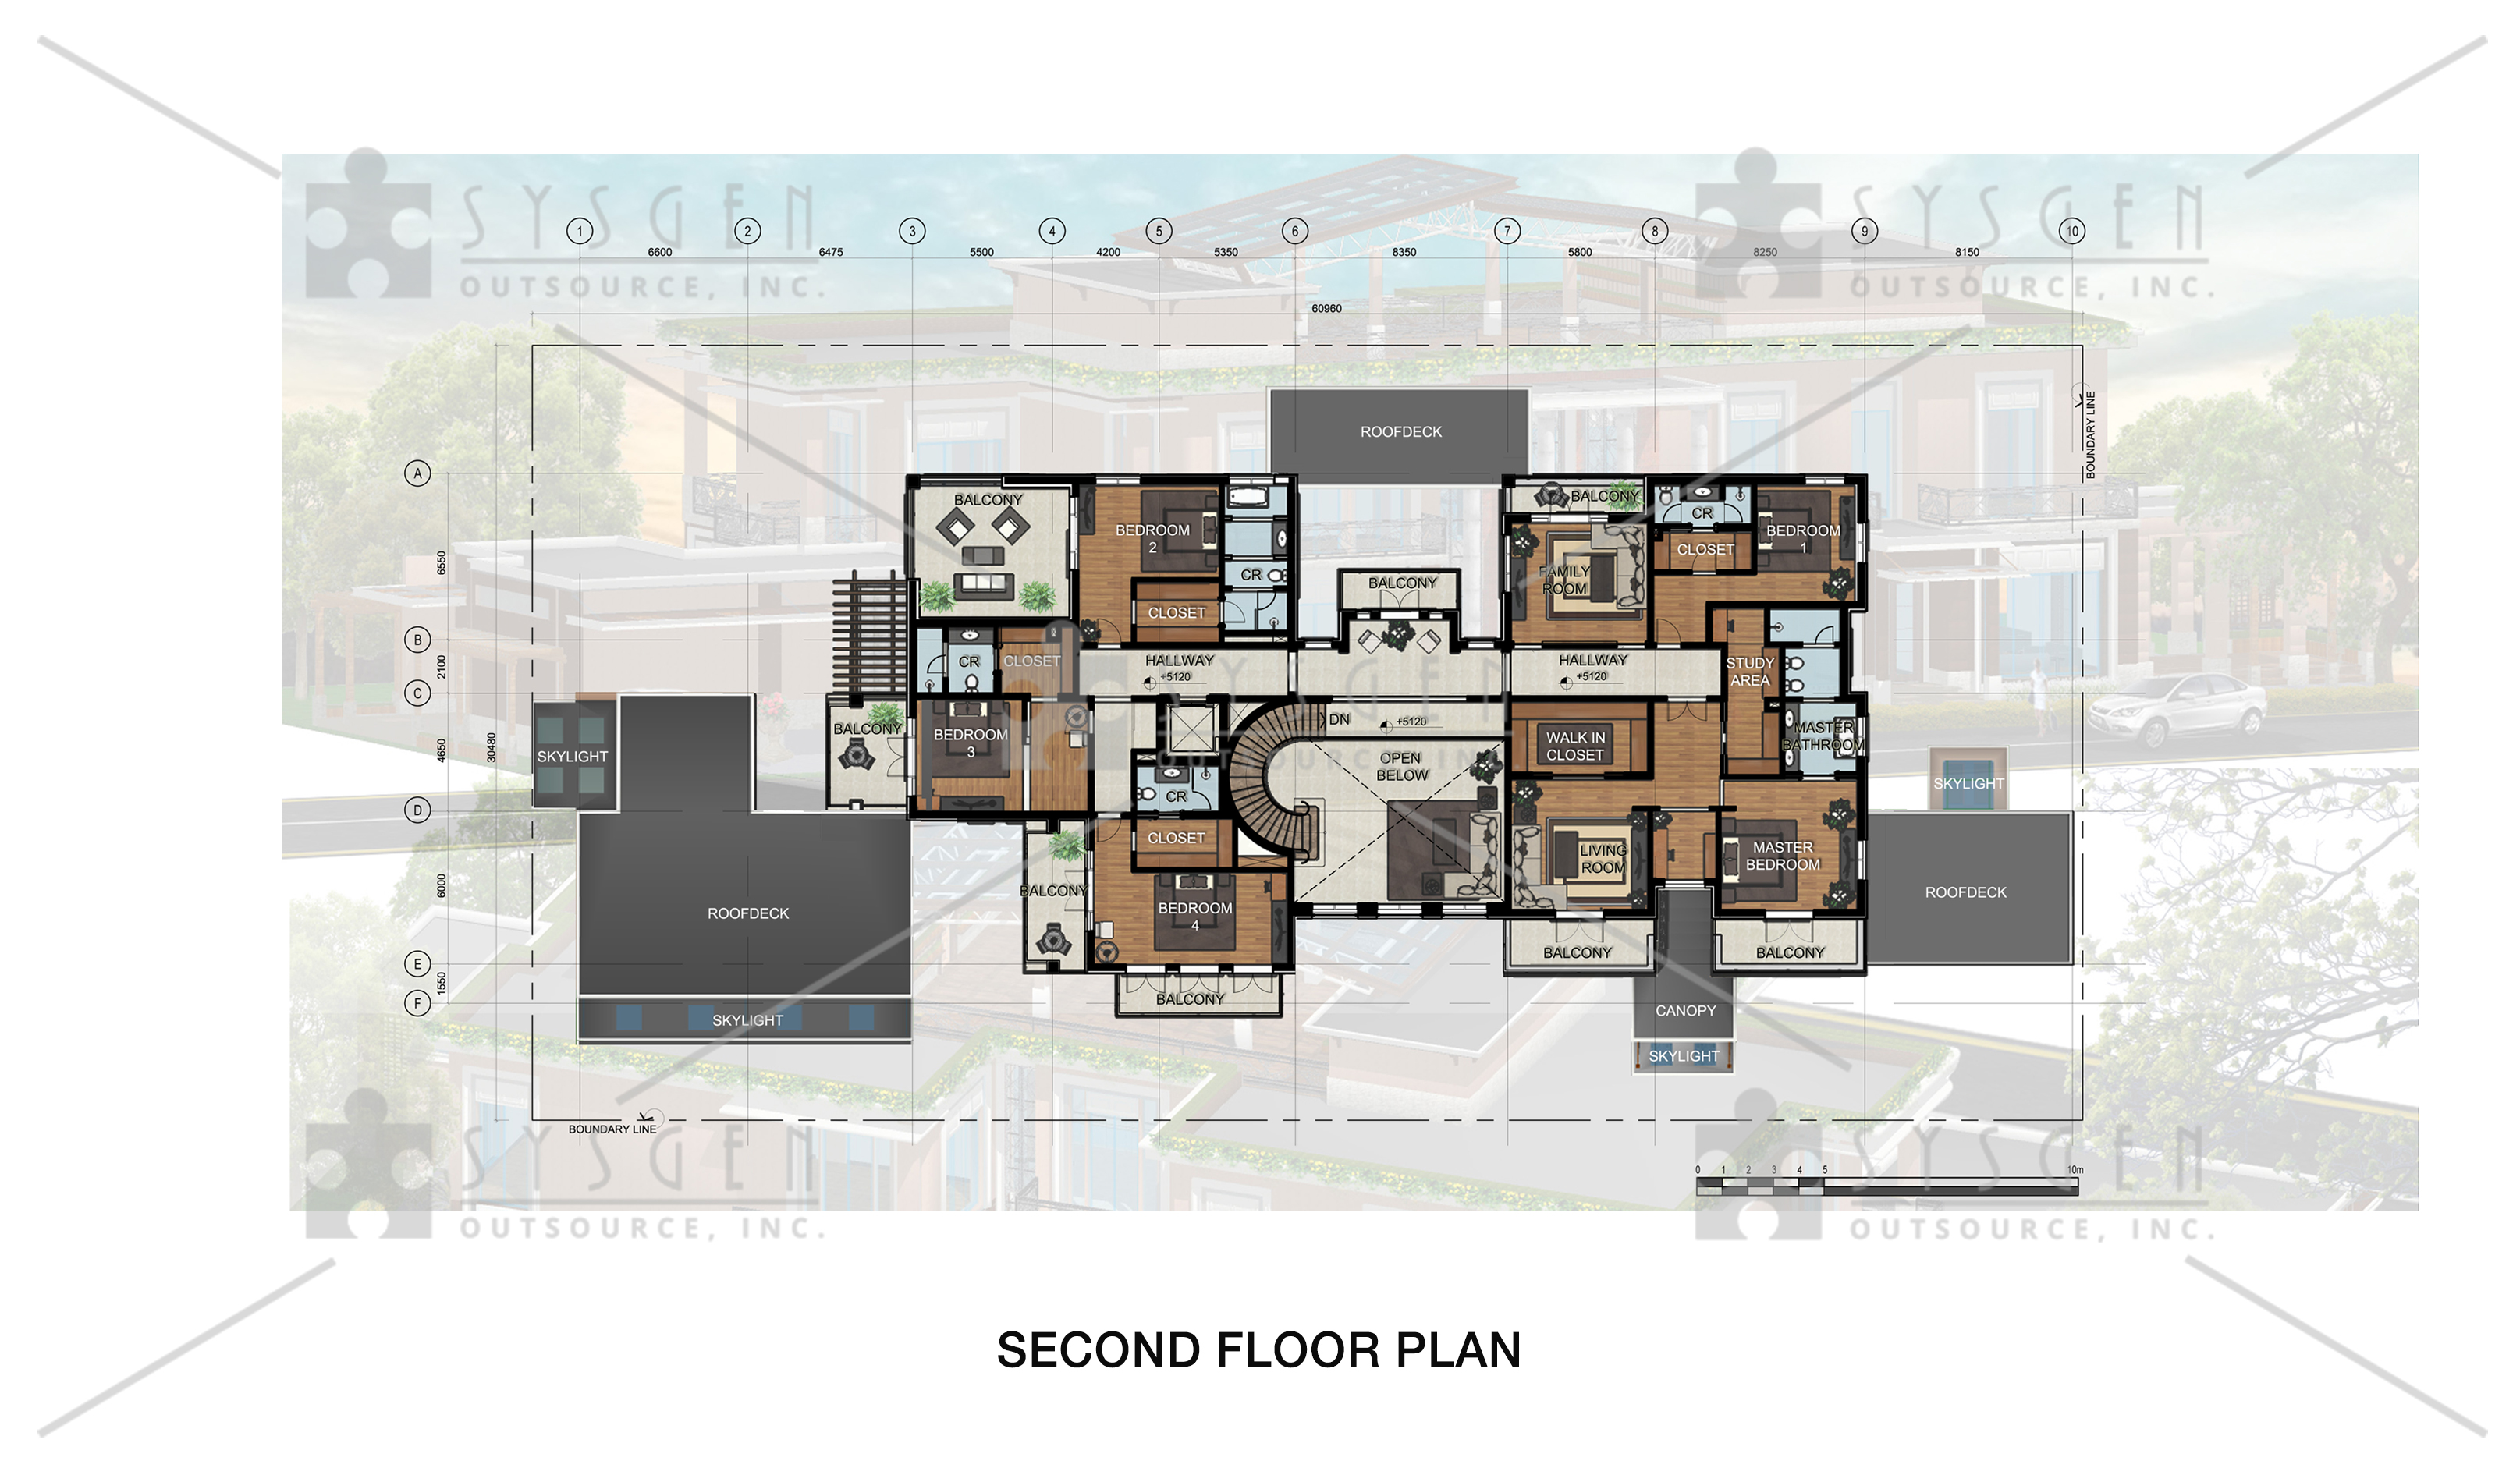 sysgen-outsource-cad-outsourcing-services-sketch-up-residential_villa-katnis5